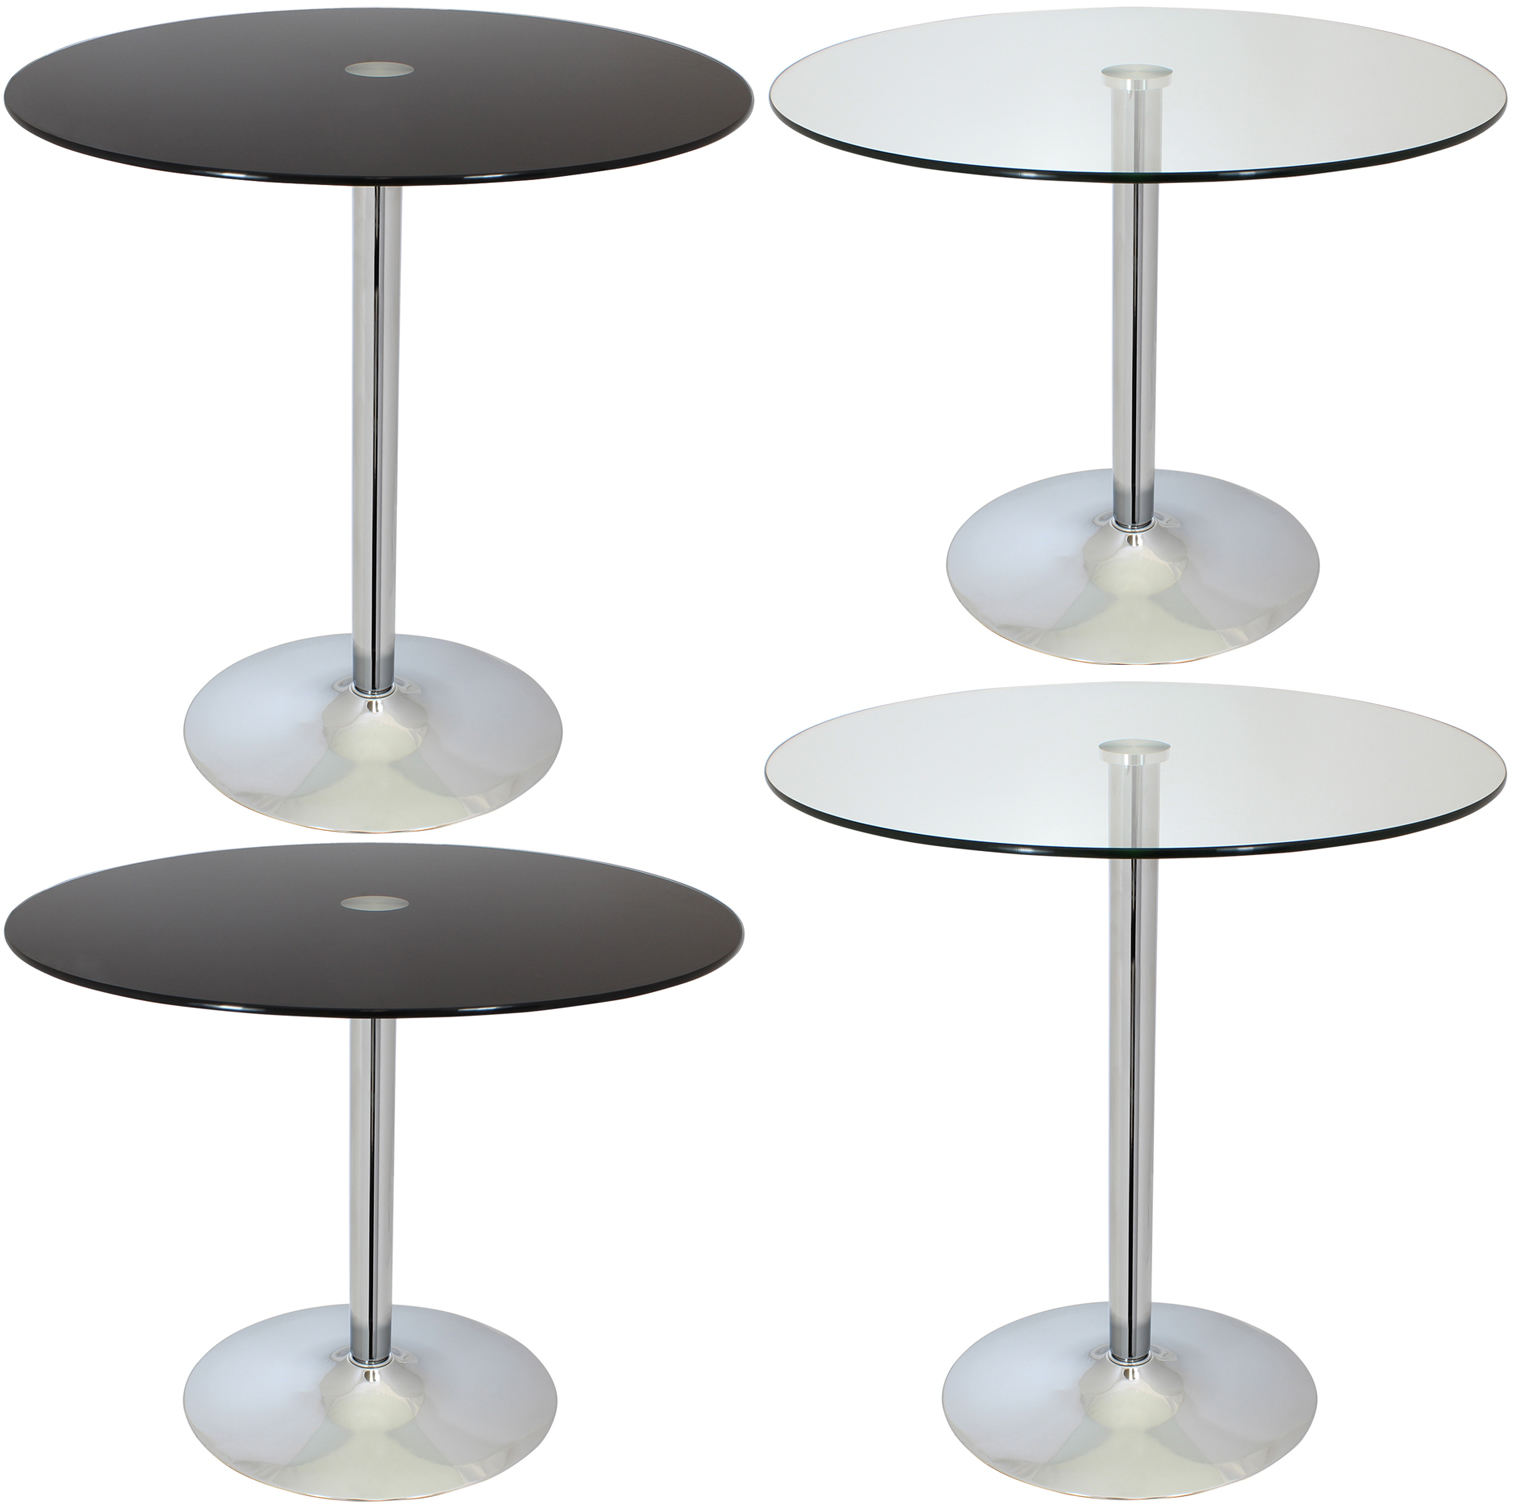 Large circular glass top bistro dining table bar cafe for Large glass table top